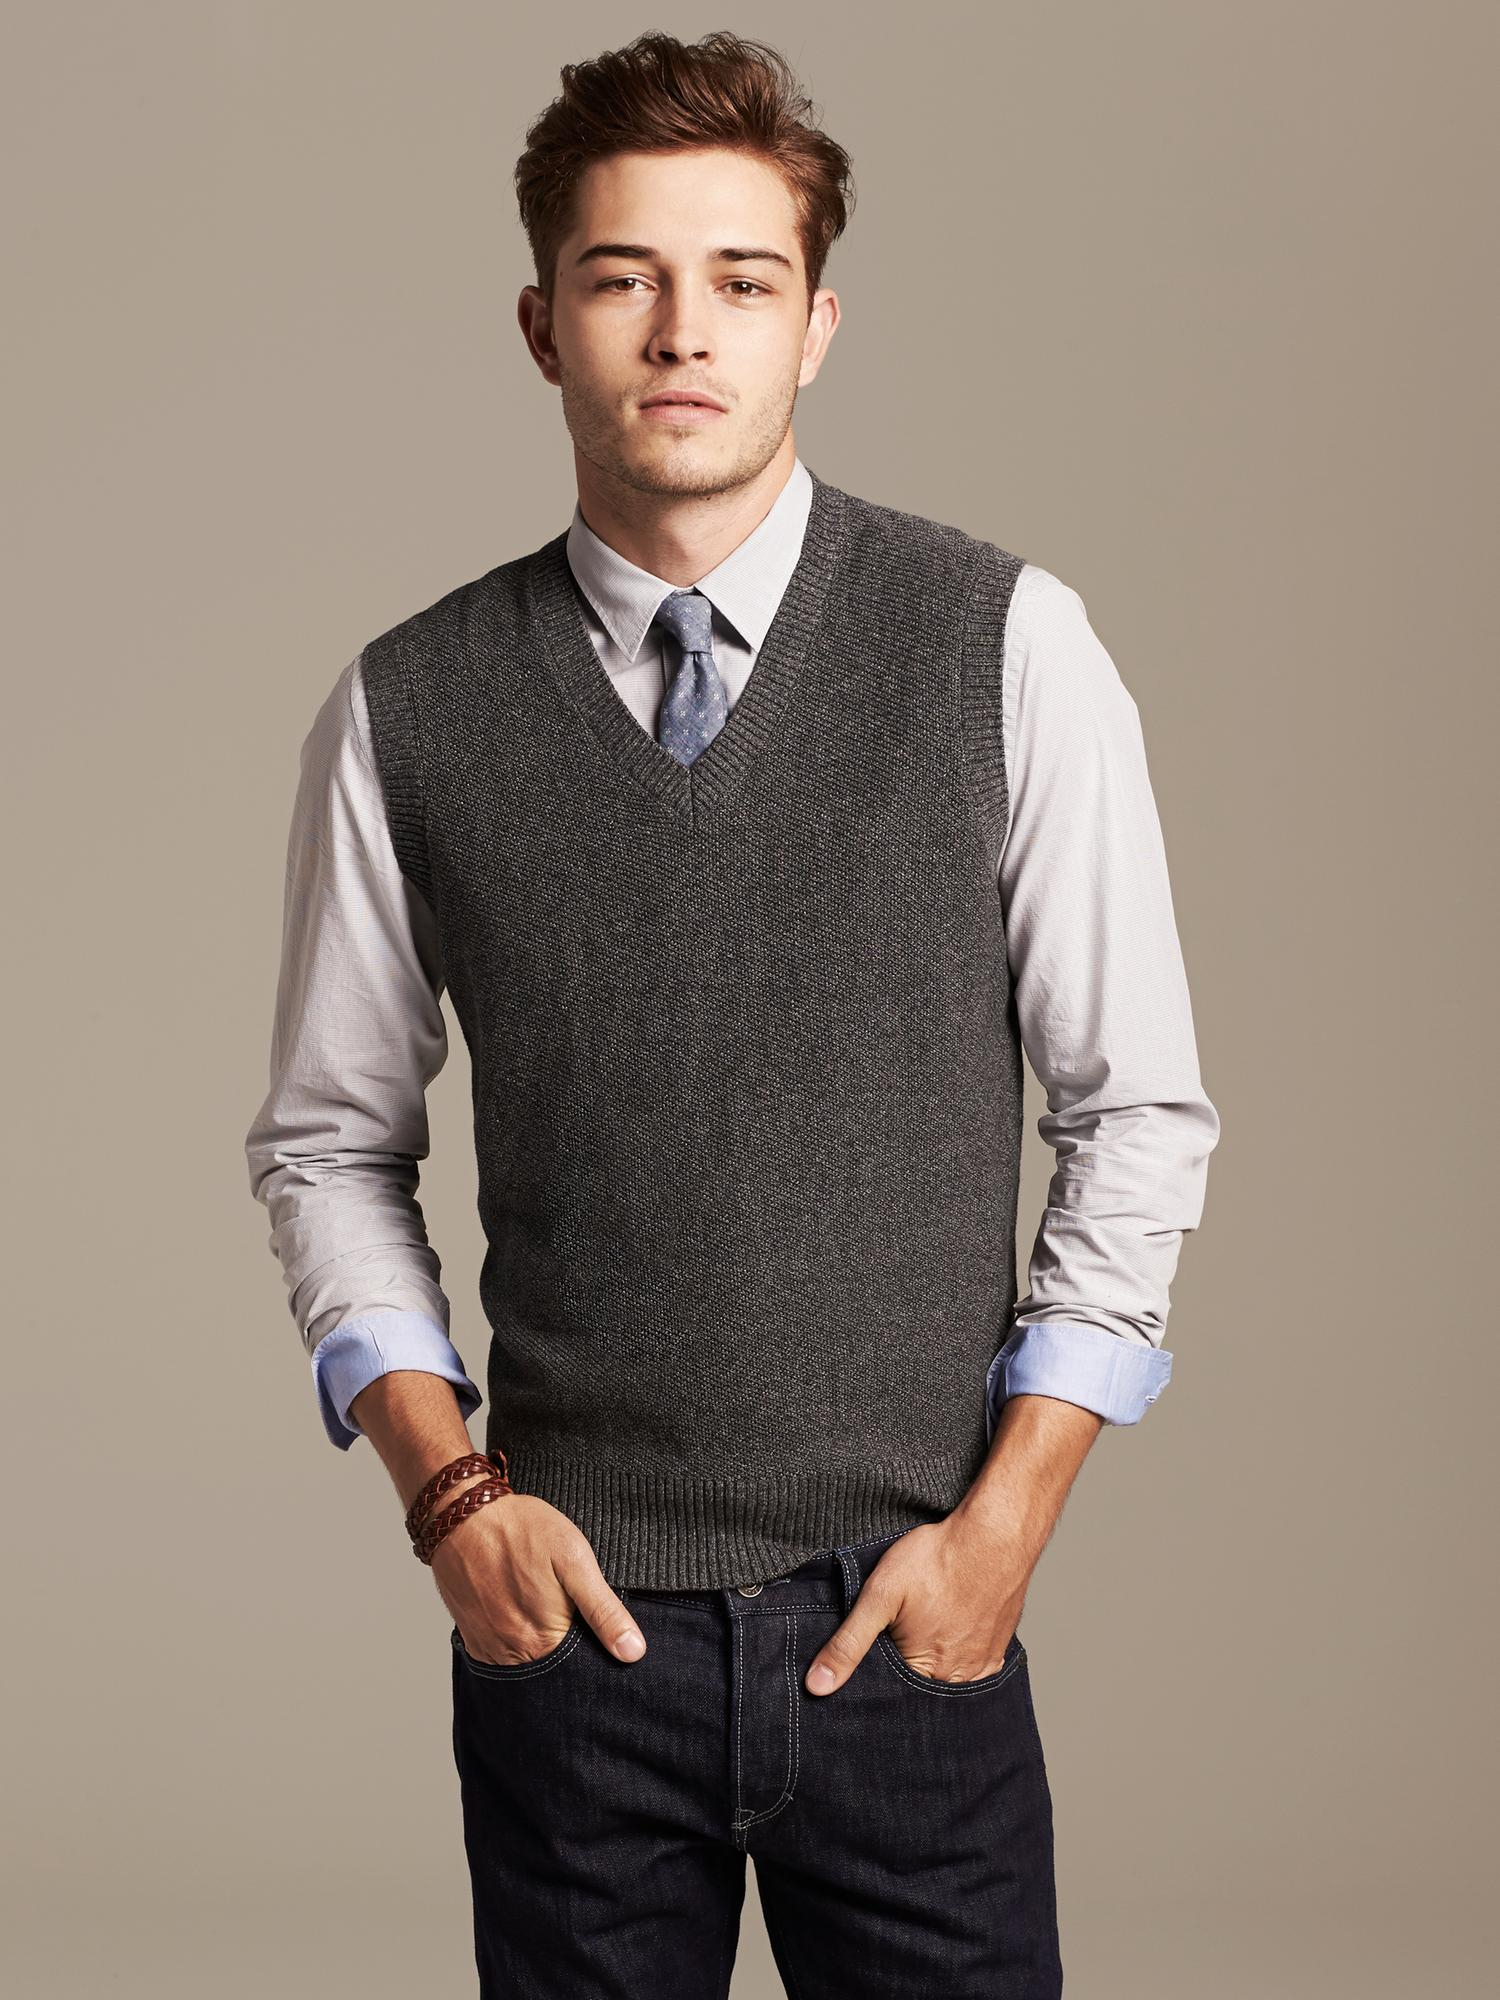 Enjoy major savings on a seasonal favorite at the men's sweater sale at Brooks Brothers. With the perfect combination of traditional and modern looks, our selection of men's designer sweaters on sale contains staple pieces for any fashion-savvy man.